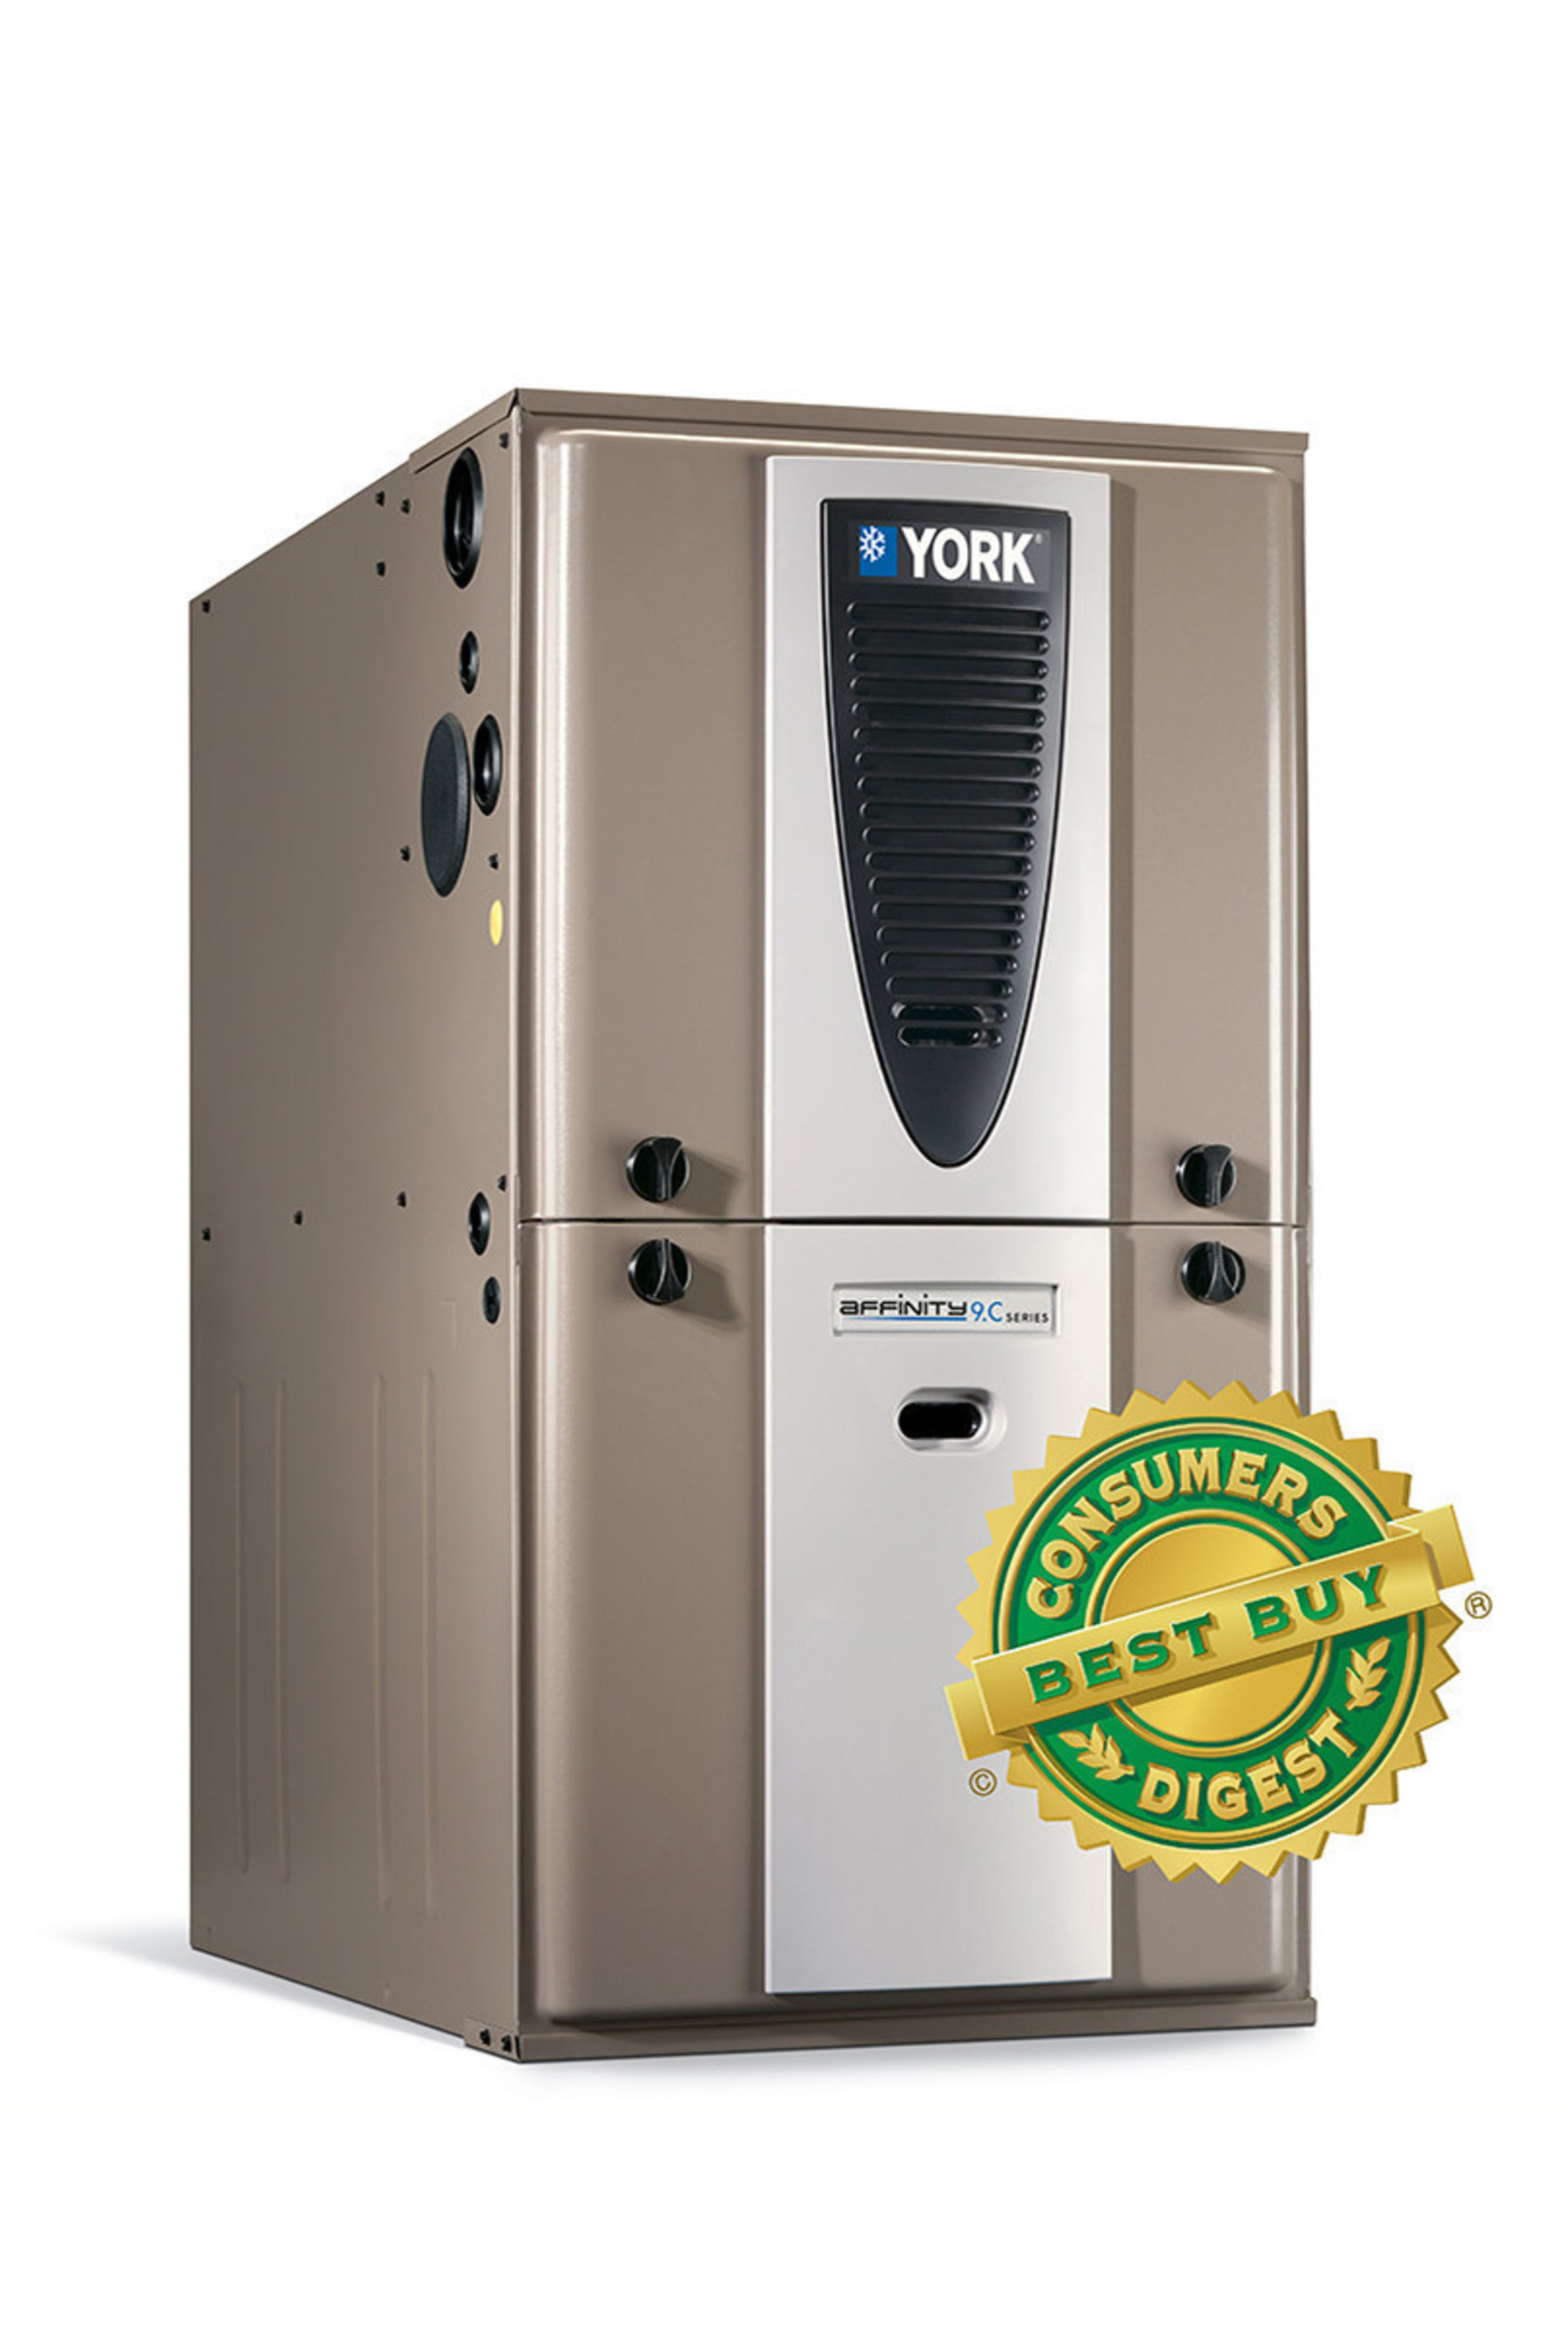 Consumers Digest magazine recently named the YORK(R) Affinity(TM) YP9C modulating gas furnace from Johnson Controls a 2016 Best Buy.